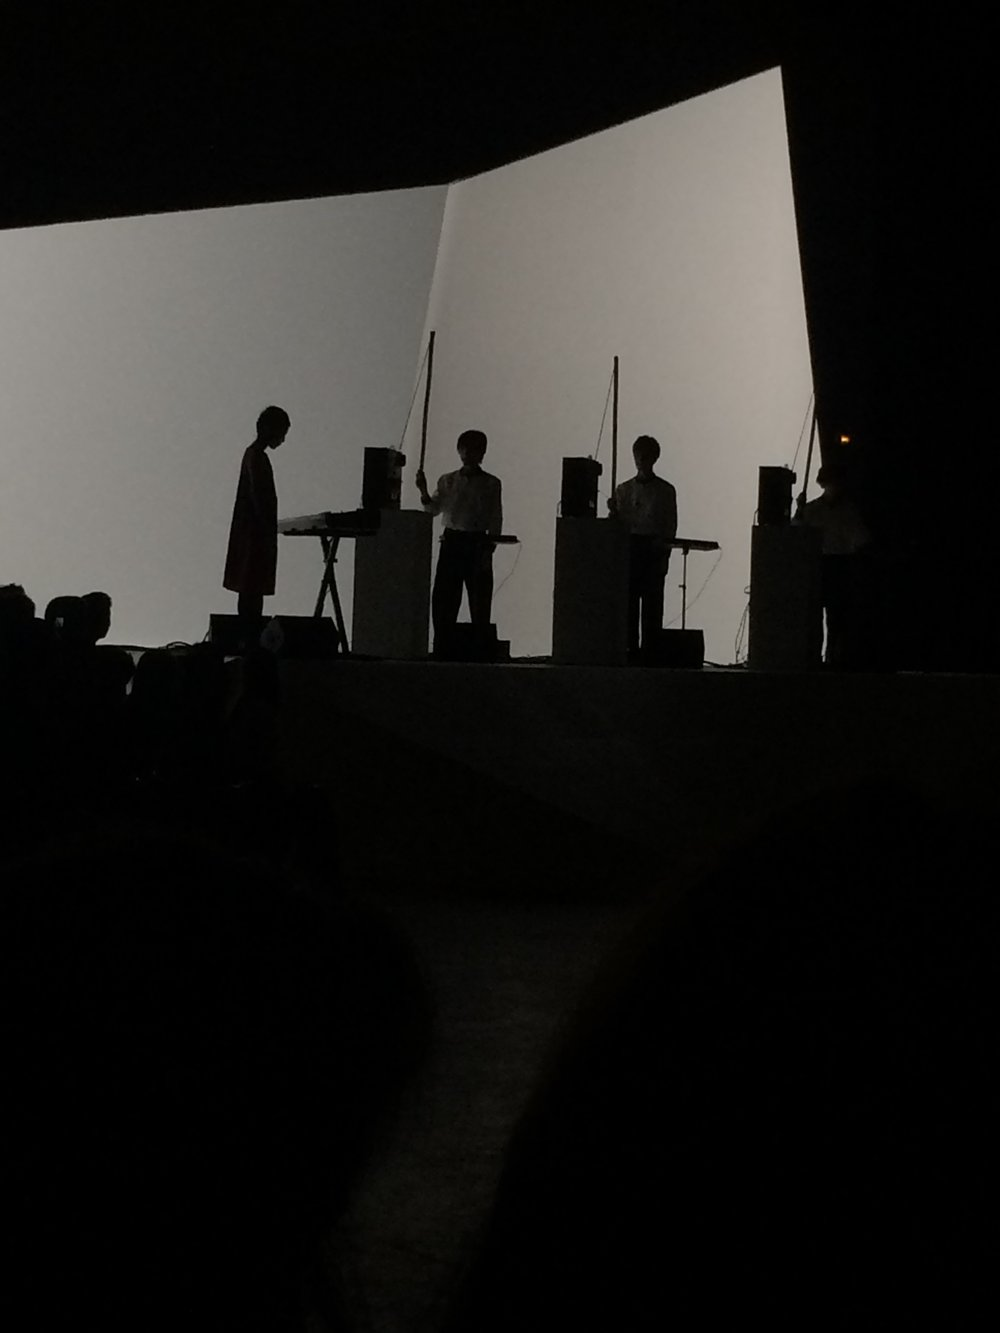 Dramatic silhouettes - the orchestra at Issey Miyake